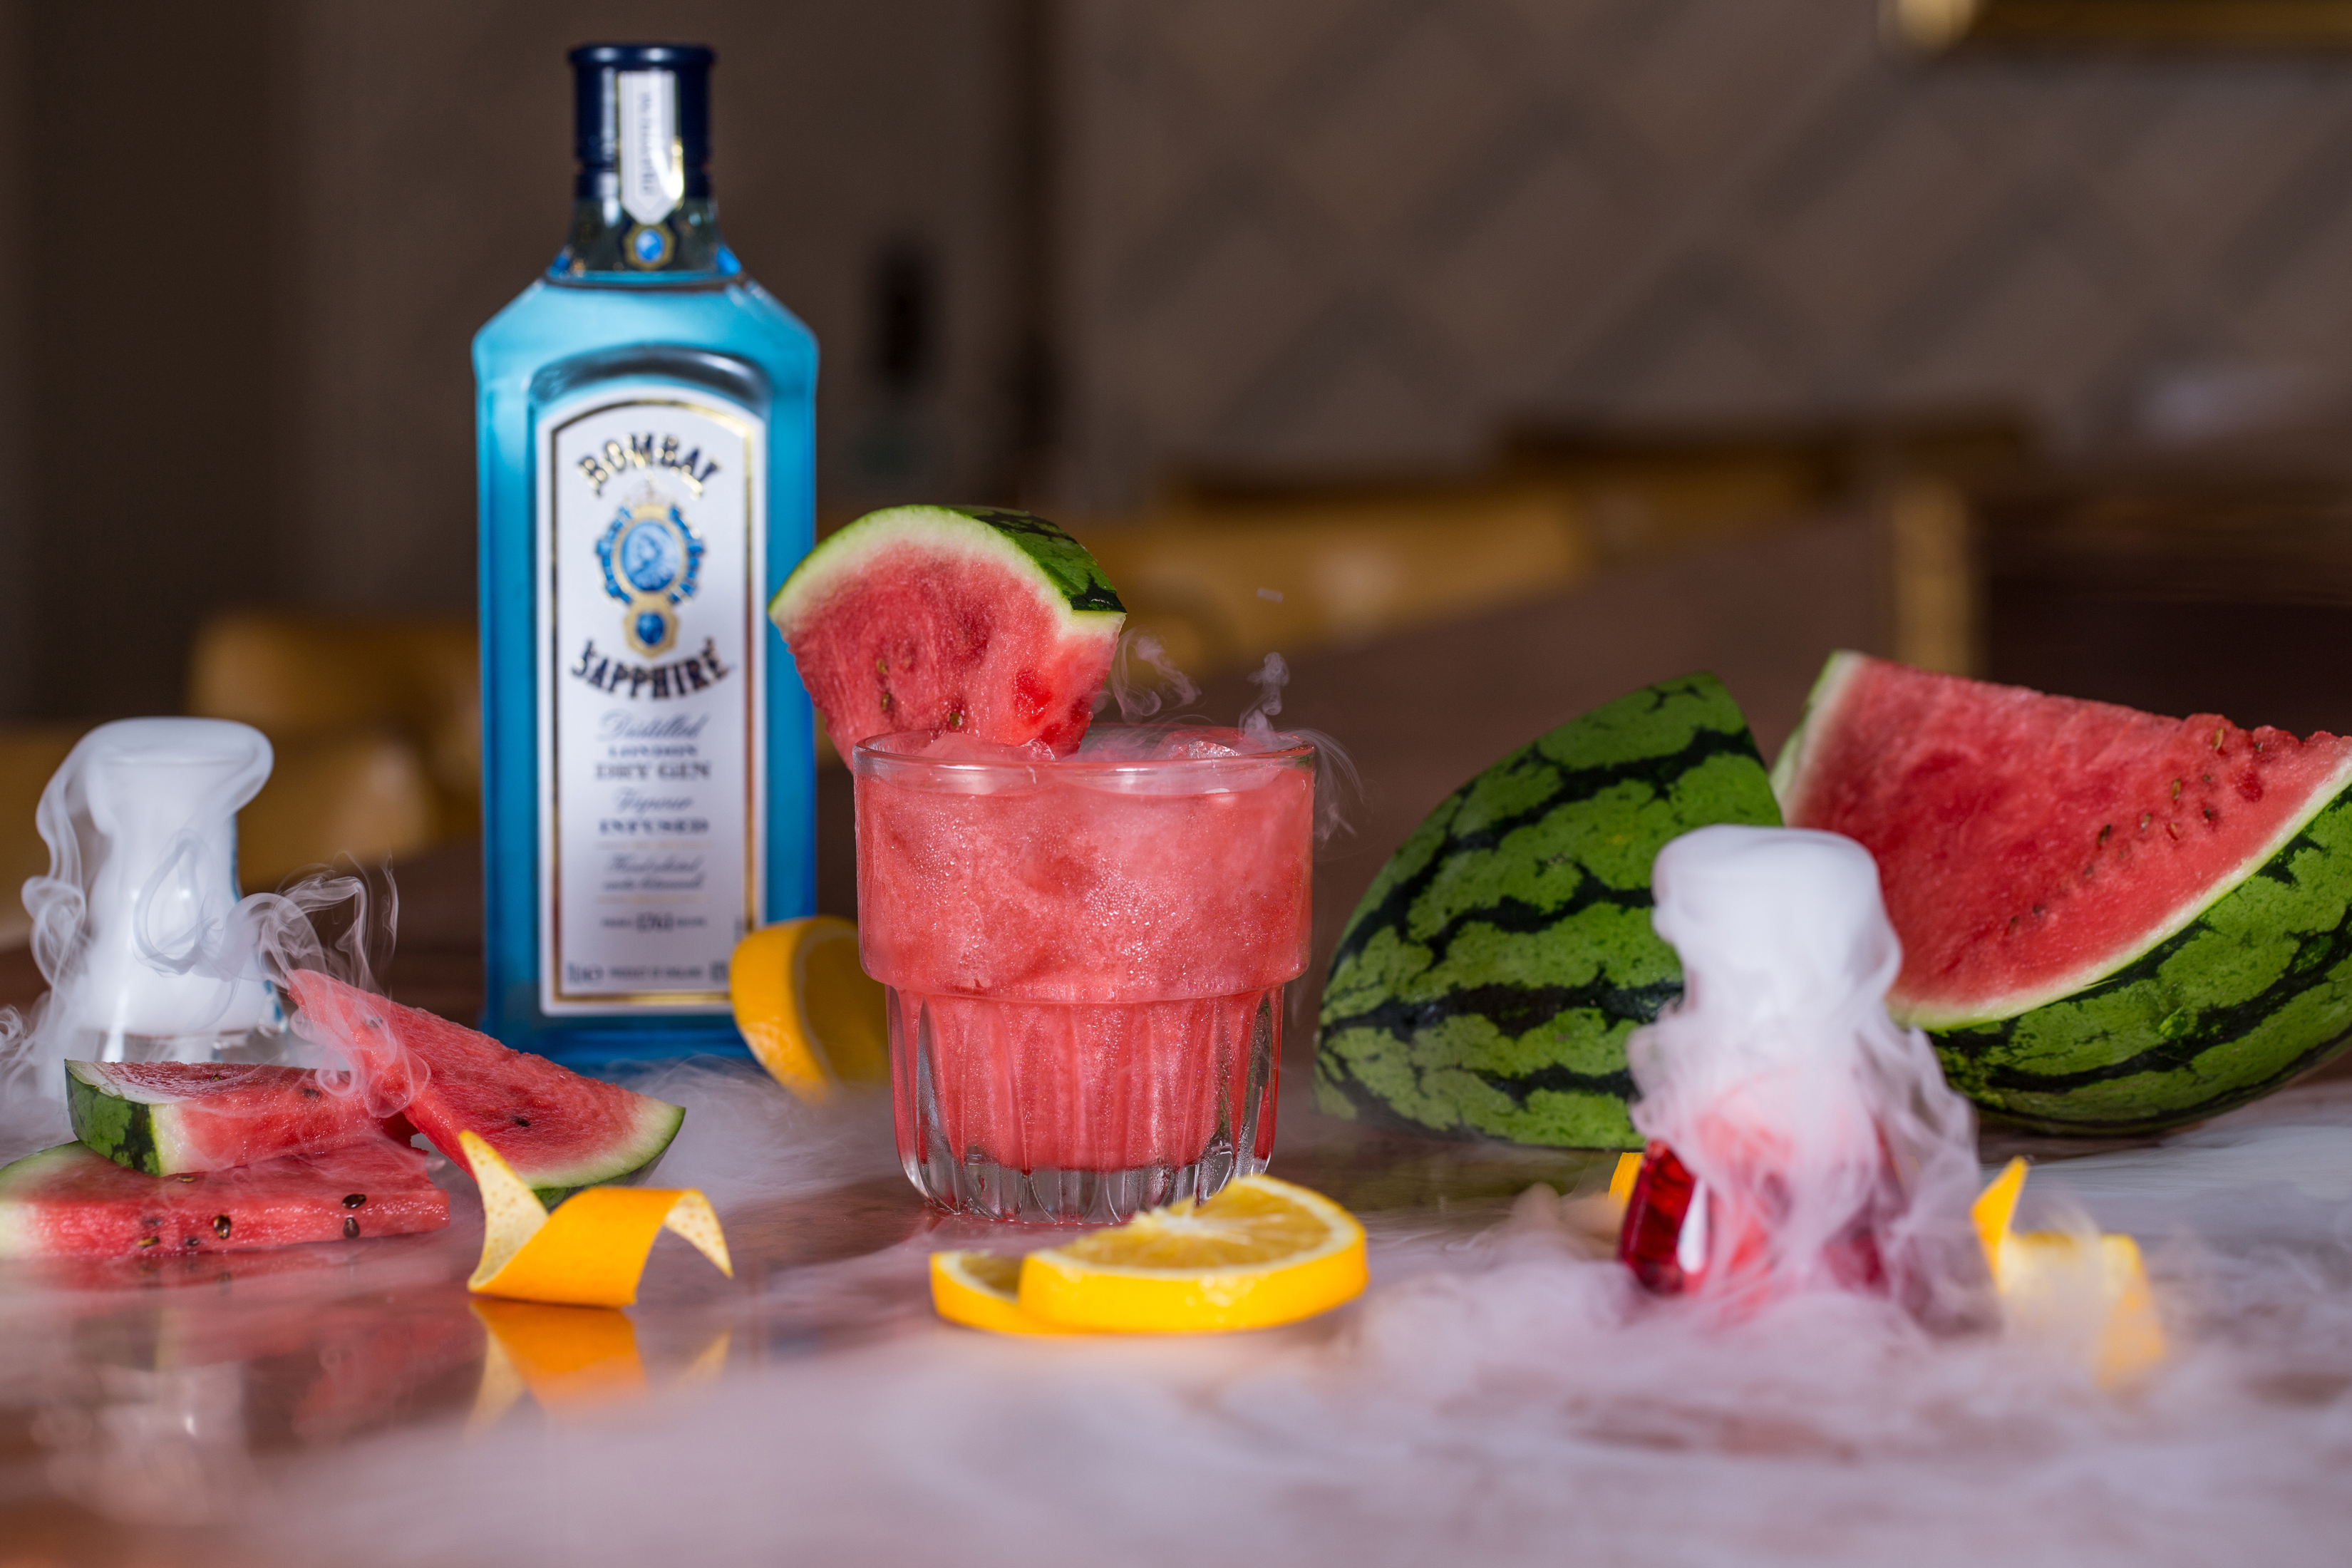 cocktail photograph with bombay sapphire gin, watermelon and dry ice.